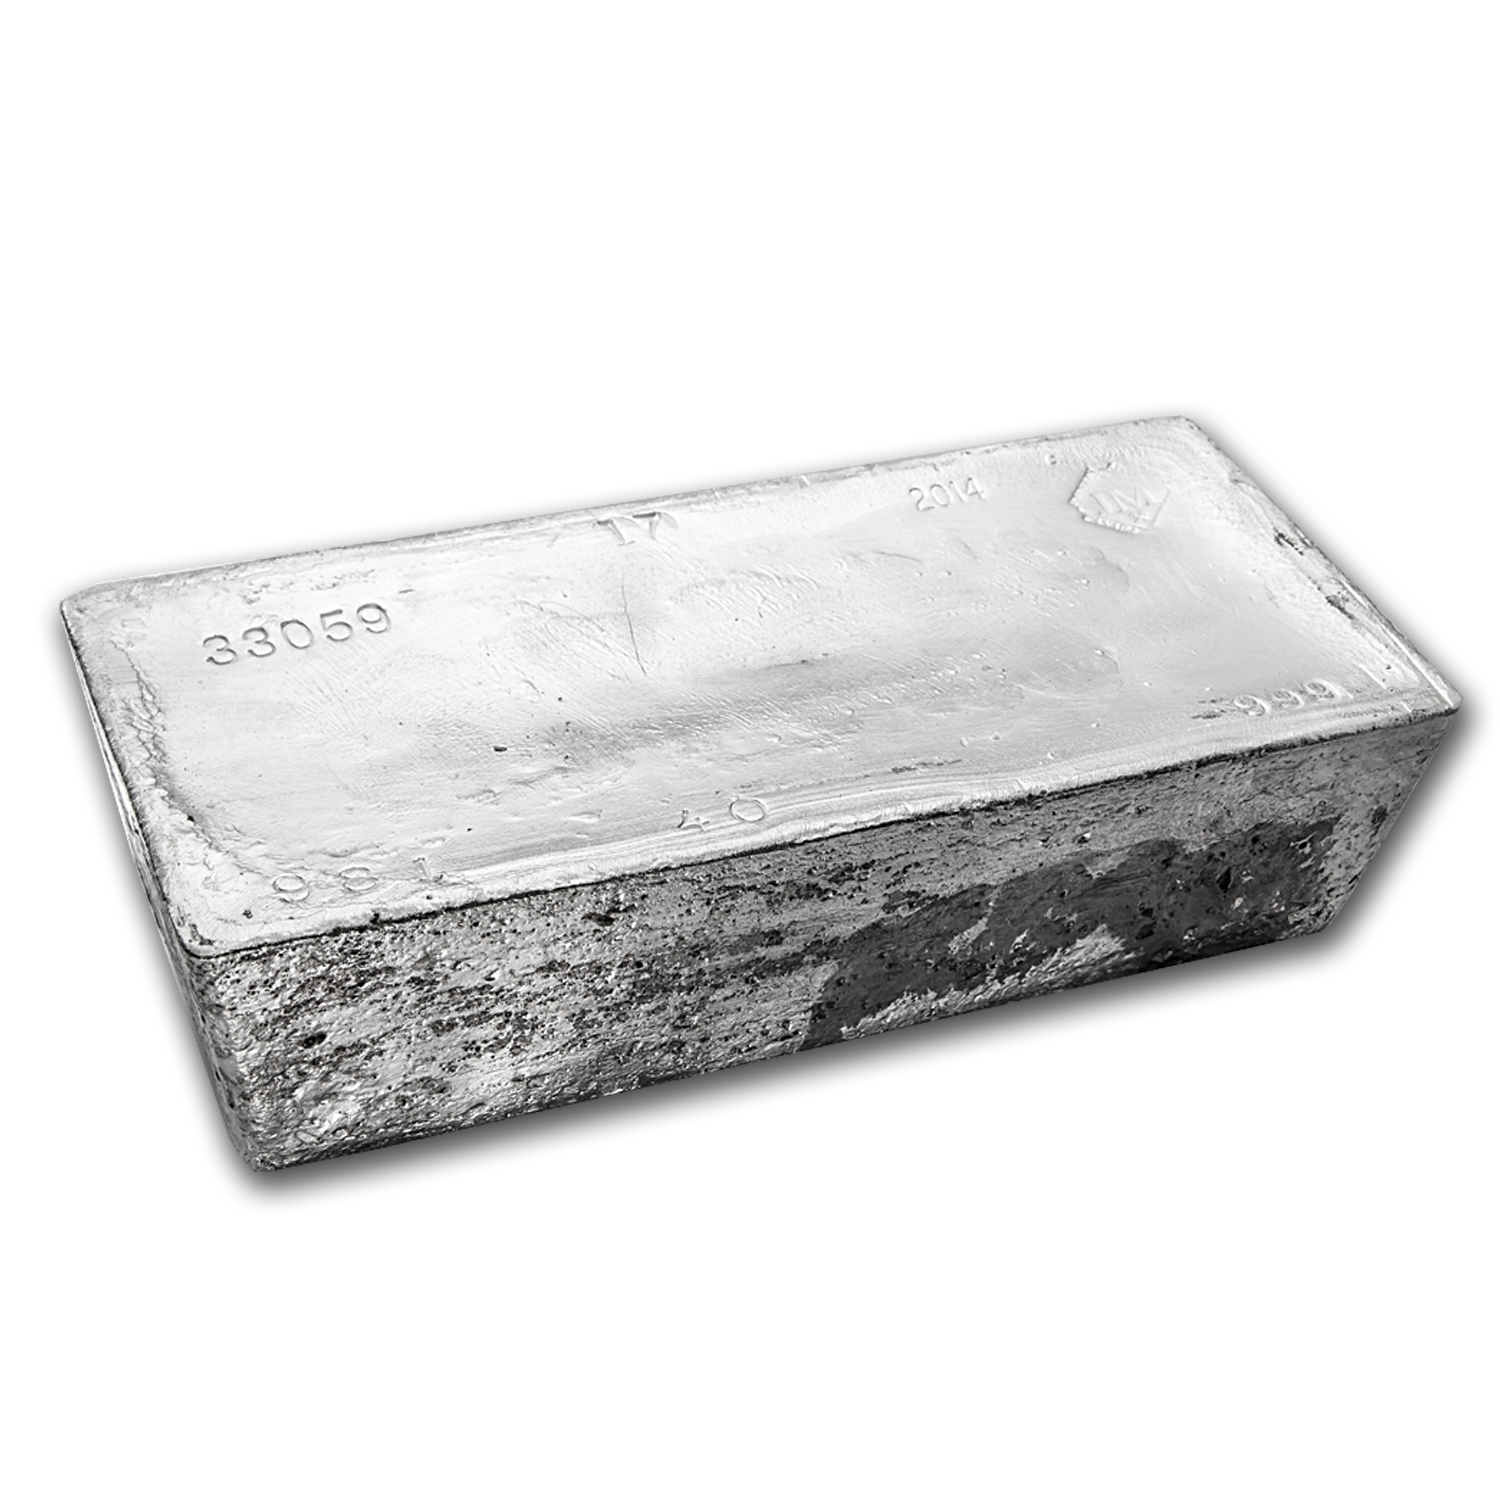 966.30 oz Silver Bars - Johnson Matthey